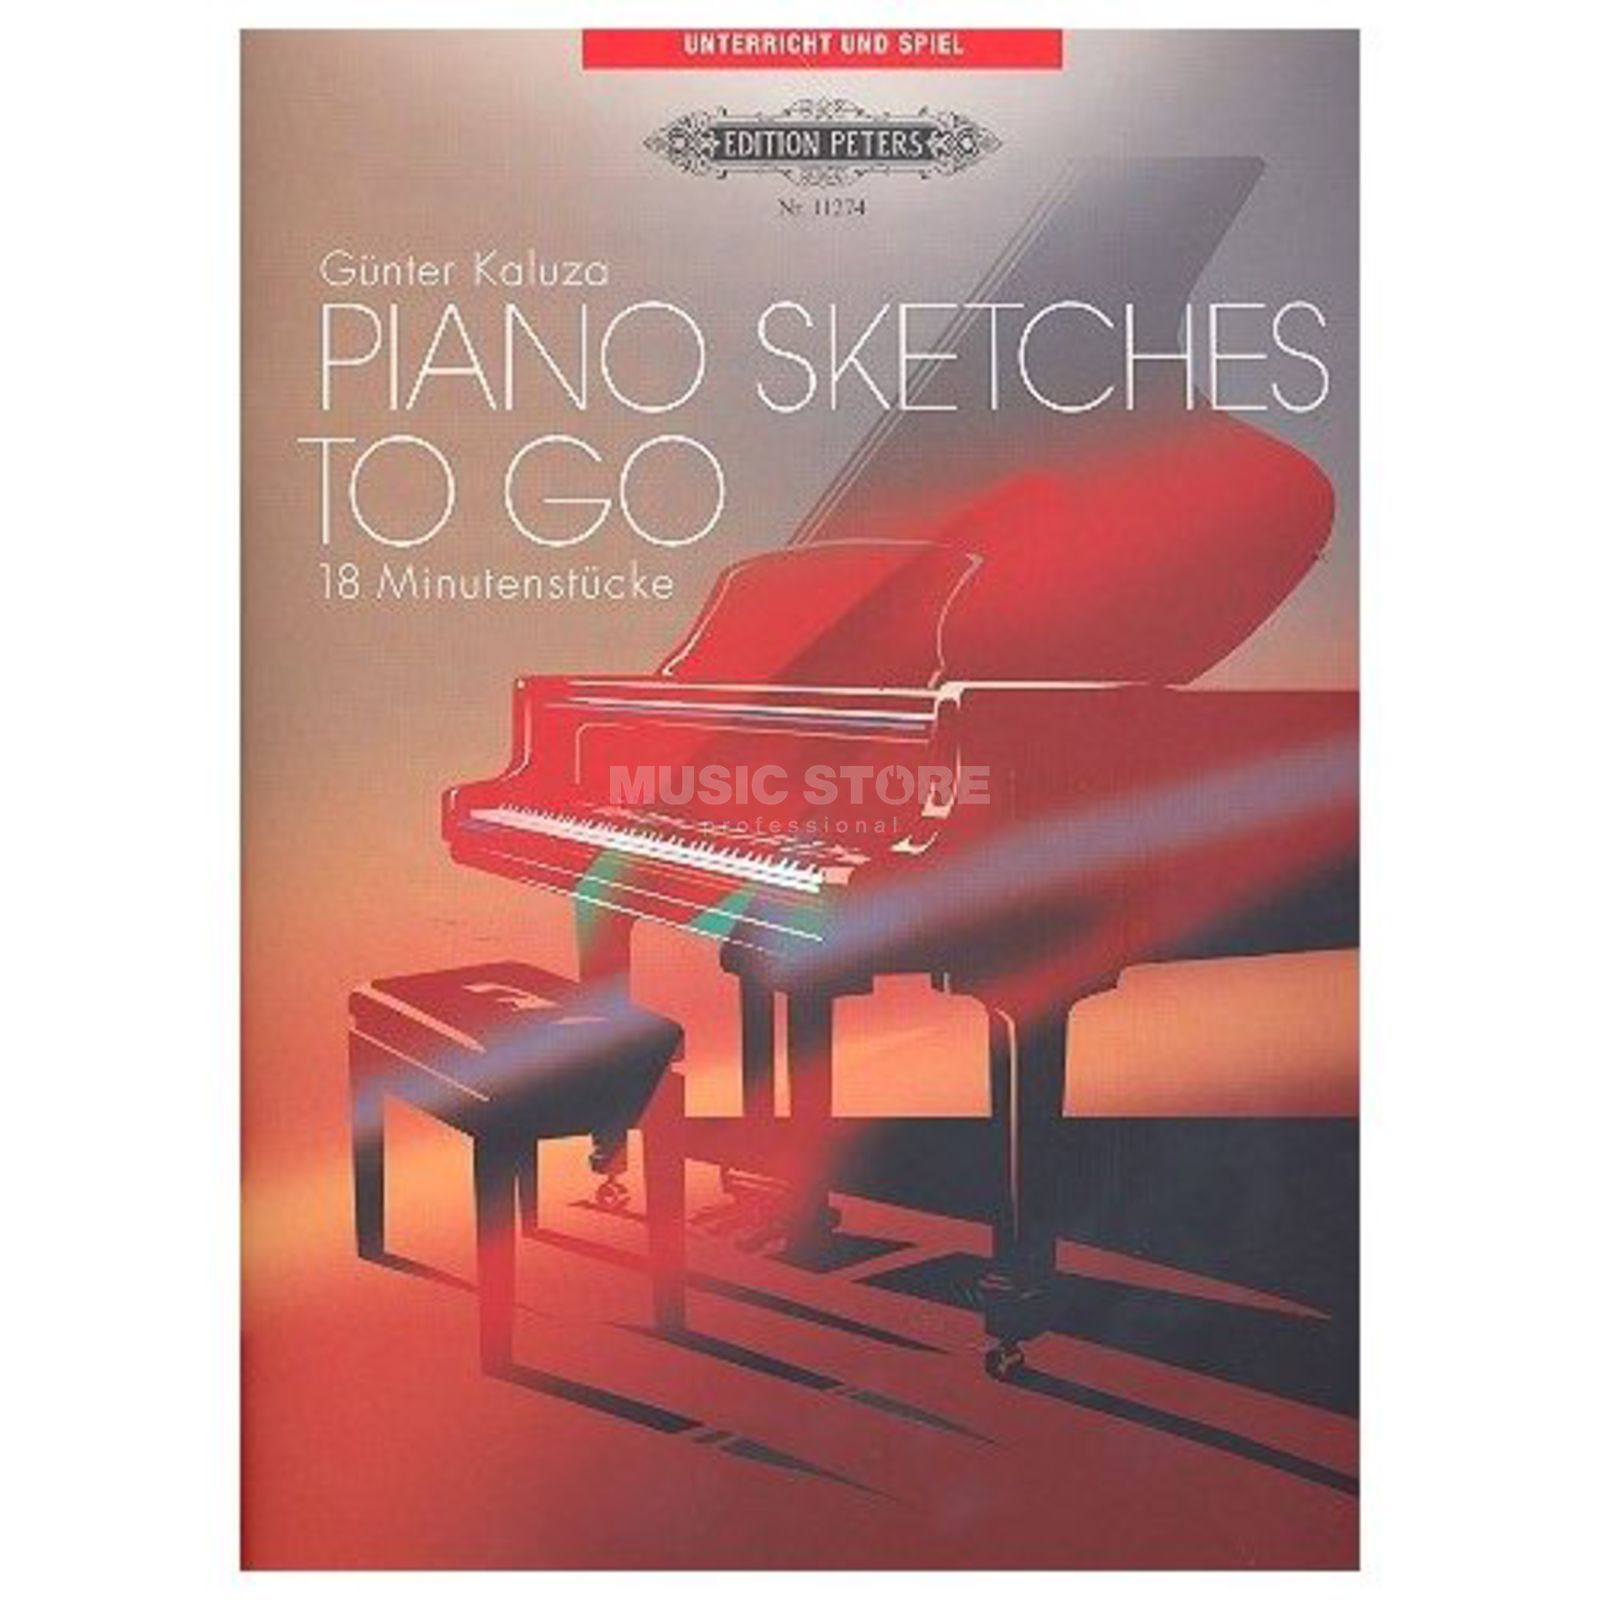 Edition Peters Piano Sketches, Klavier Günter Kaluza Produktbillede